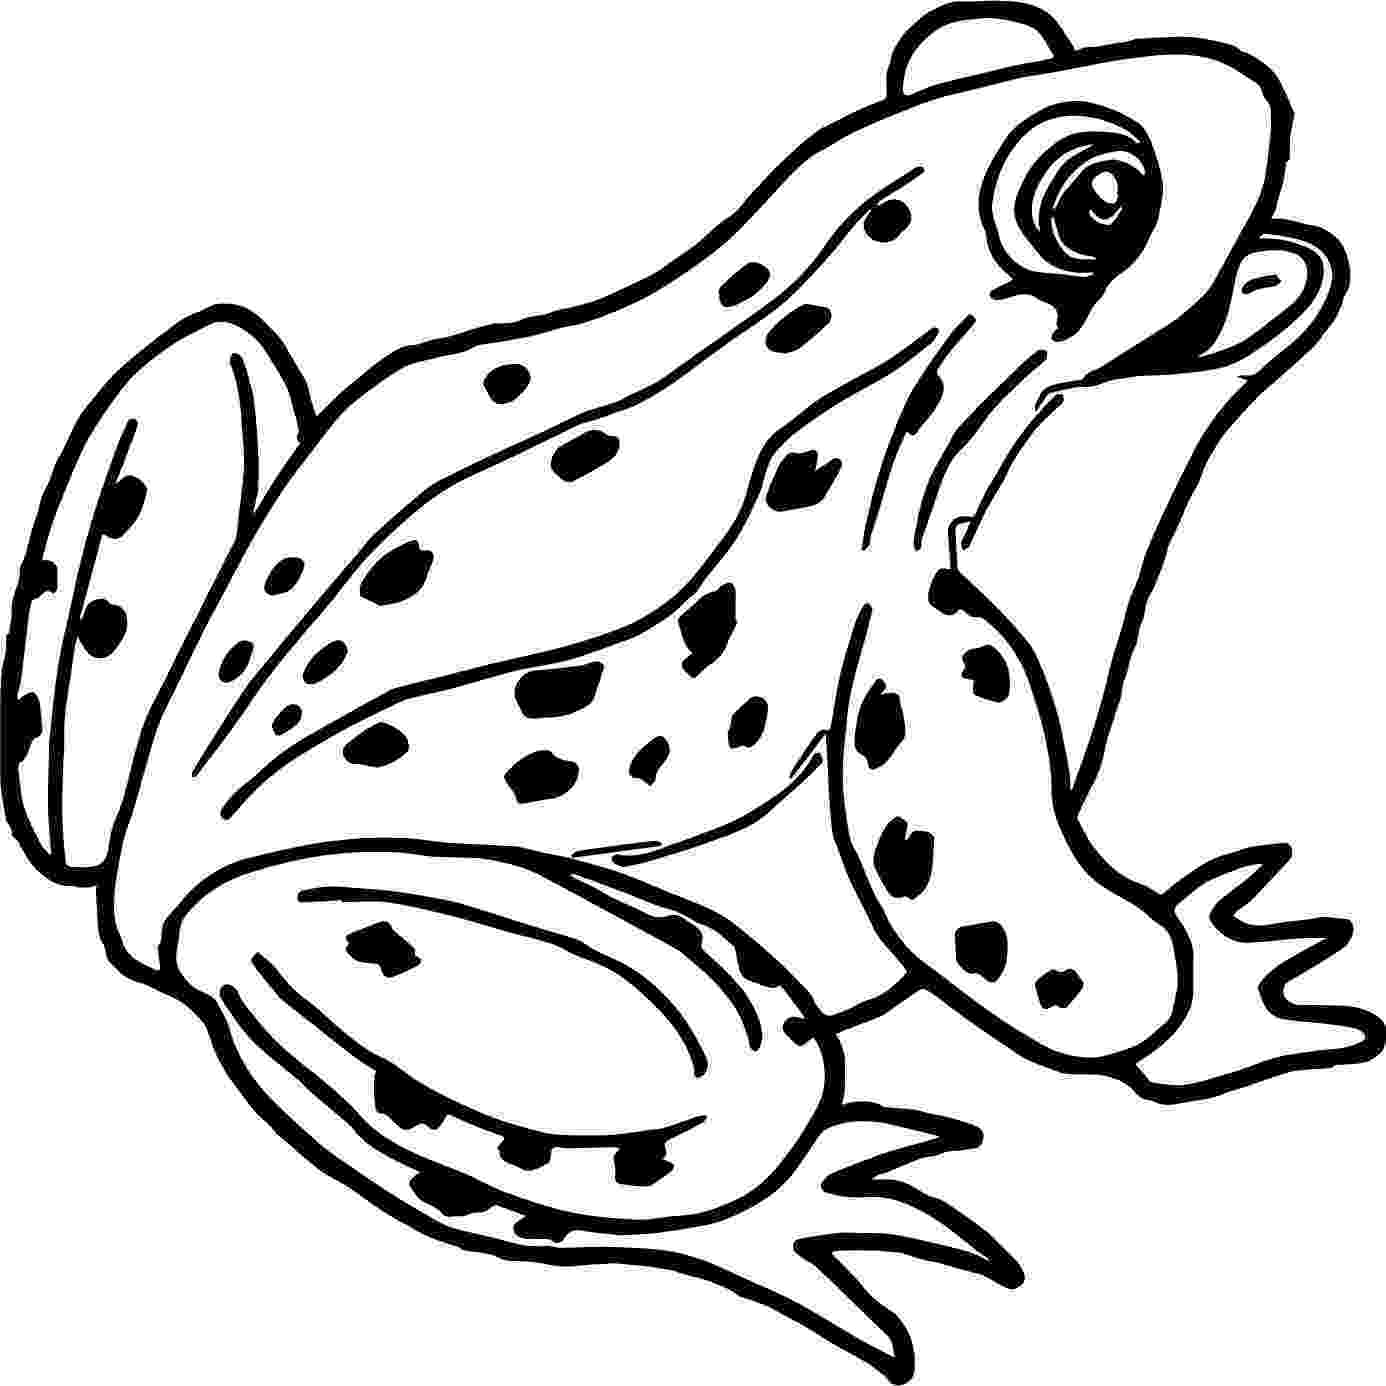 frog to color free printable frog coloring pages for kids cool2bkids frog color to 1 1